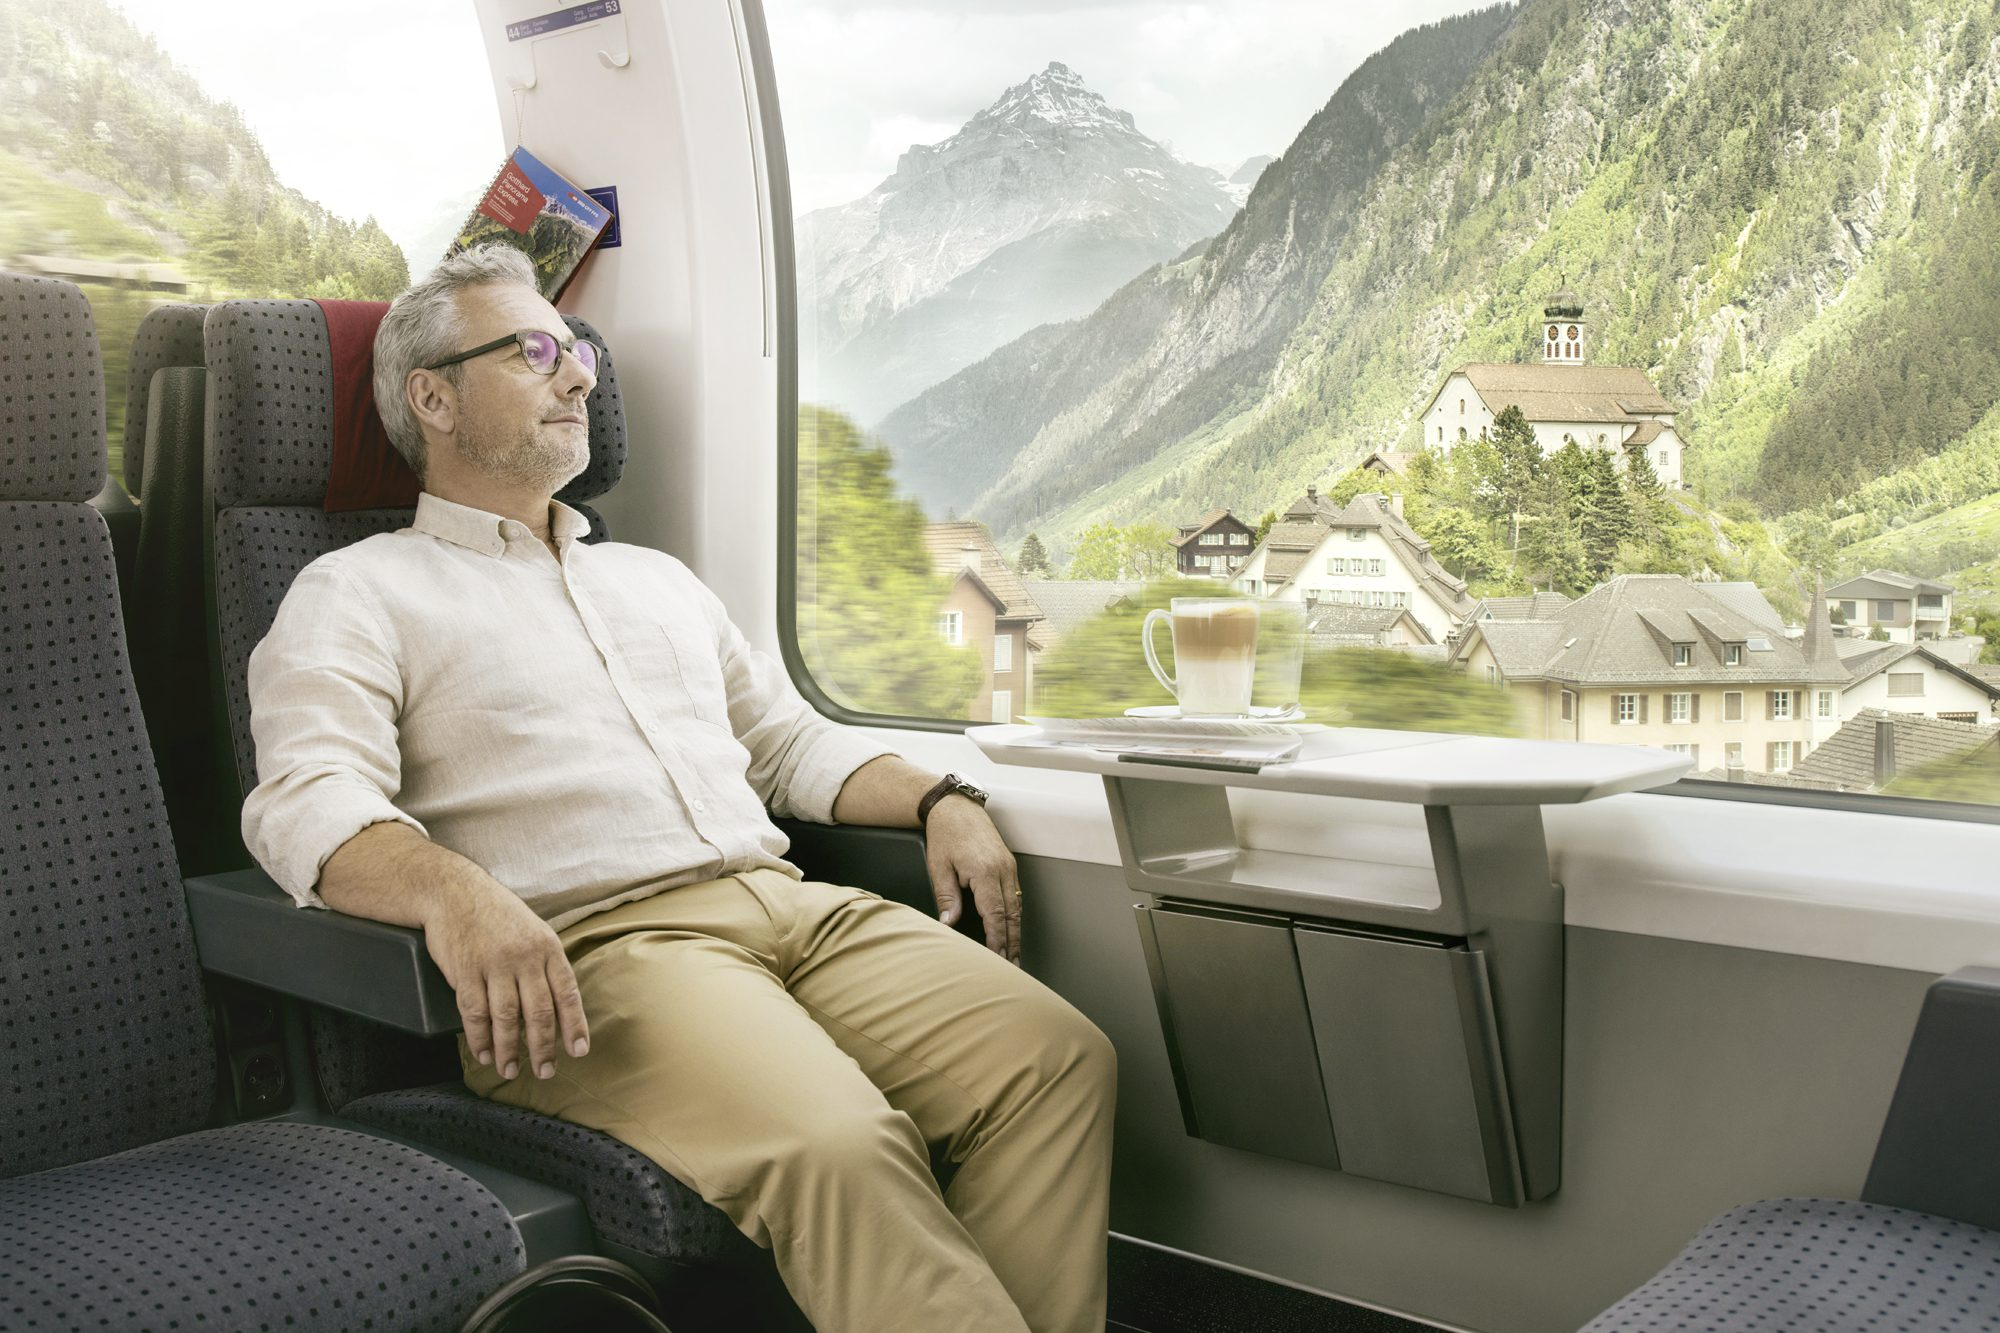 Swiss Travel System - Convenience